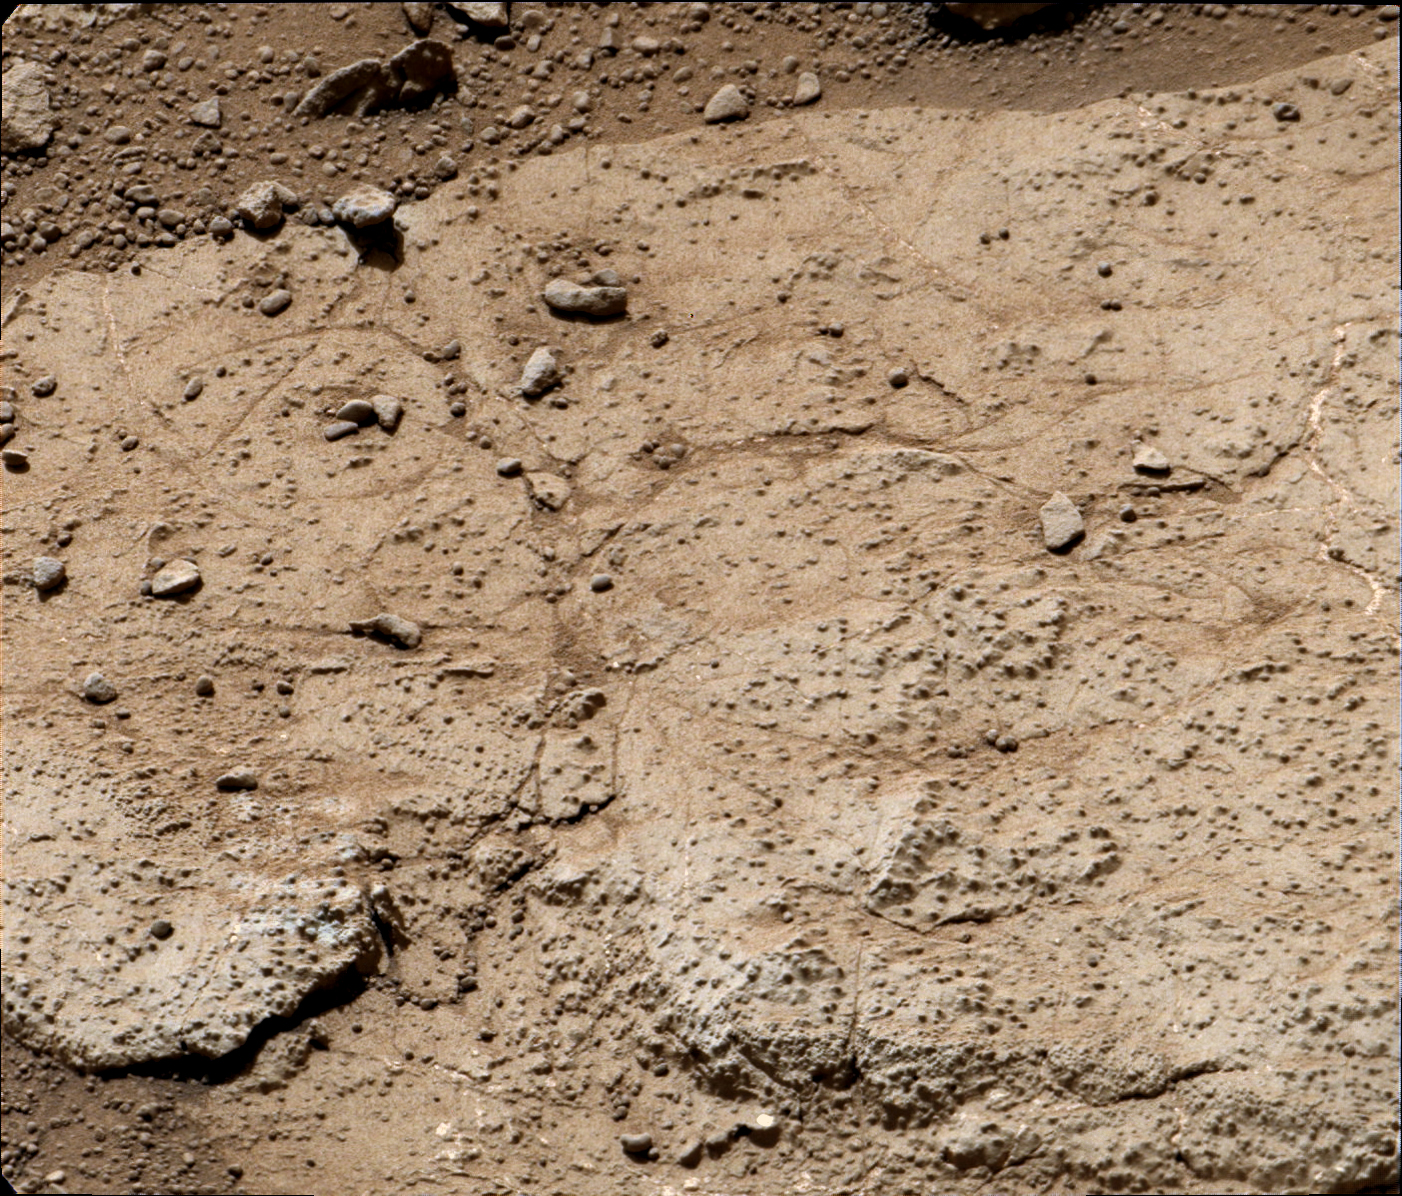 NASA - 'Cumberland' Target for Drilling by Curiosity Mars ...